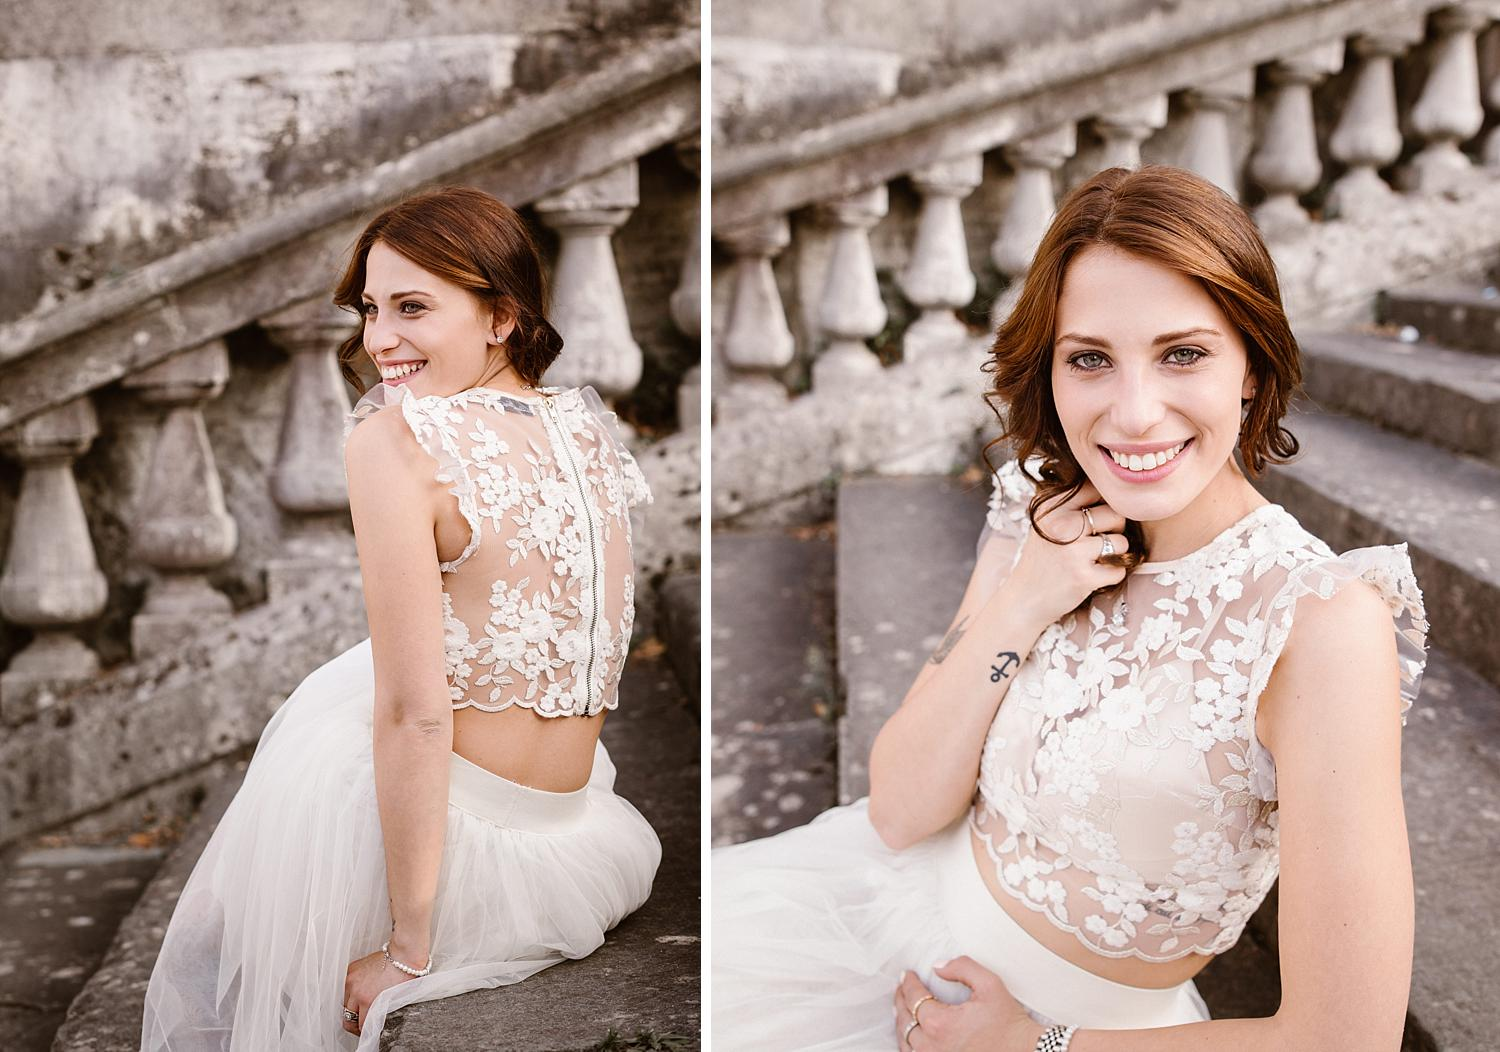 weddingphotographer florence 49 - Maddalena & Arturo - A Chic Anniversary Session in Florence